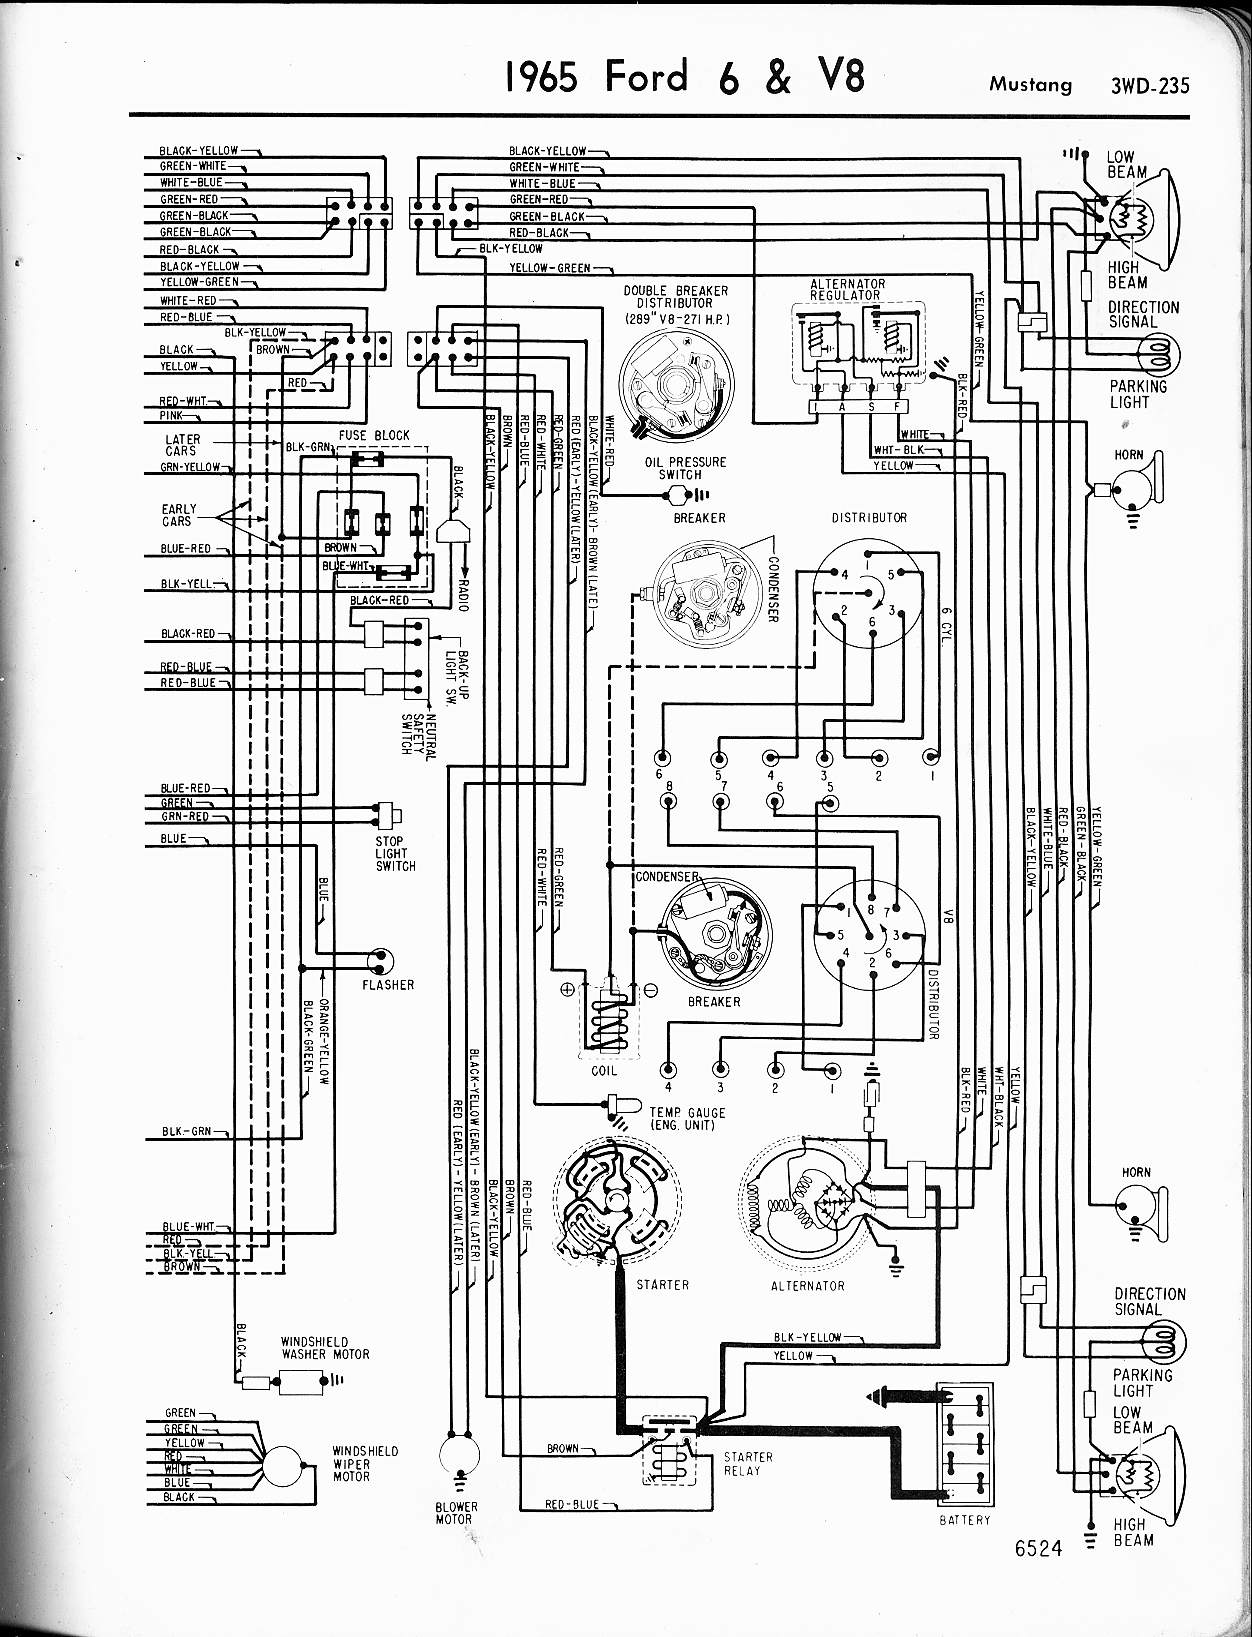 MWire5765 235 100 [ mustang horn wiring diagram ] 63 impala fuse box on 63 mustang wiring harness diagram at gsmx.co